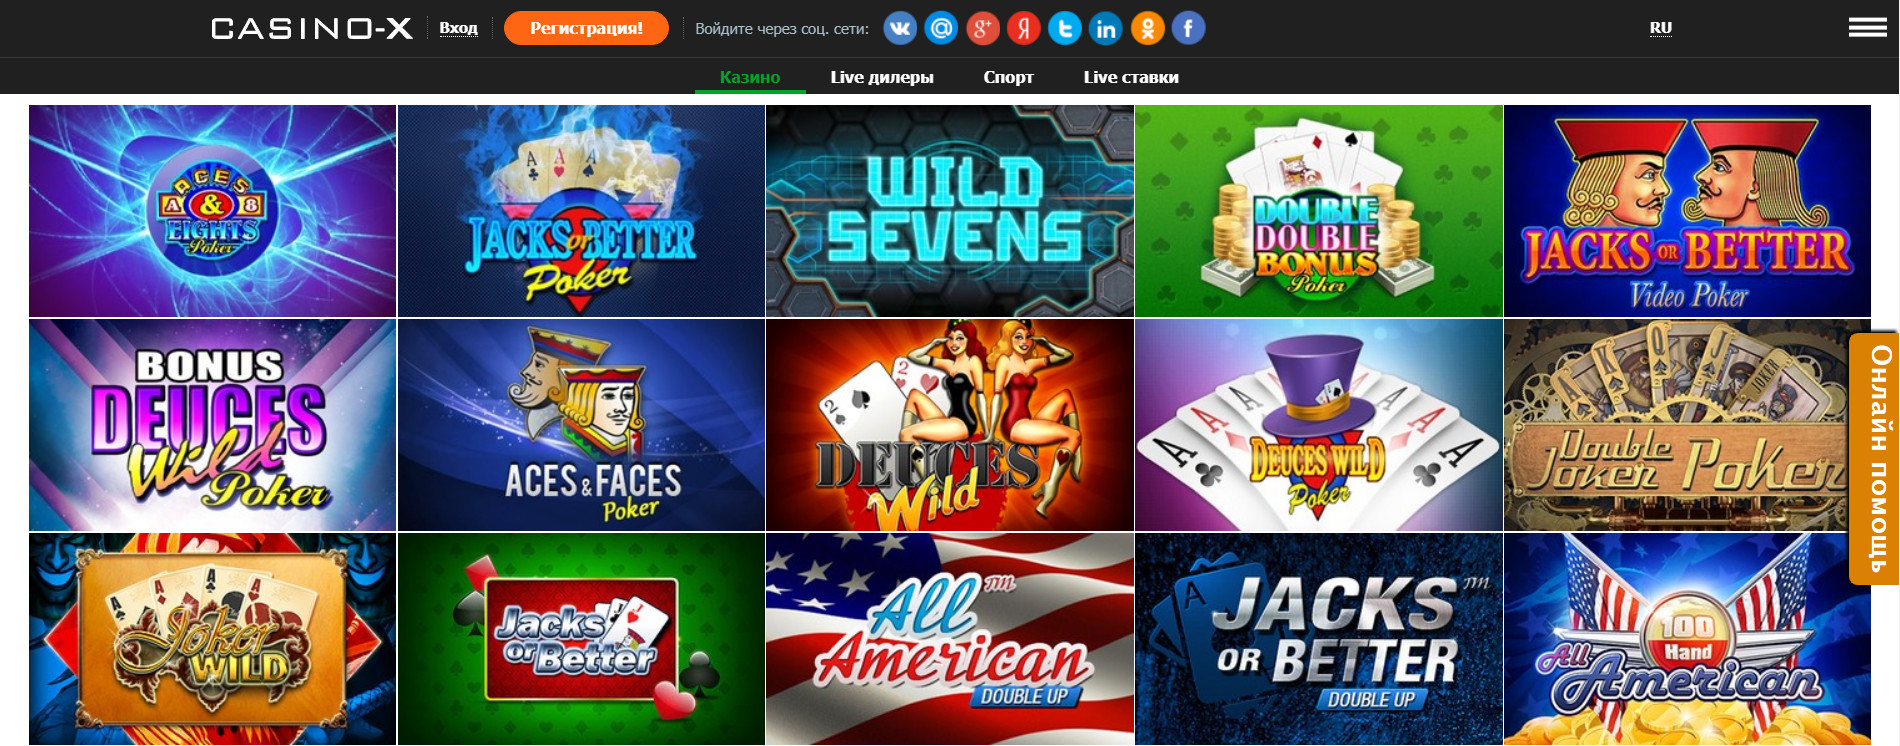 The rules of the game video poker